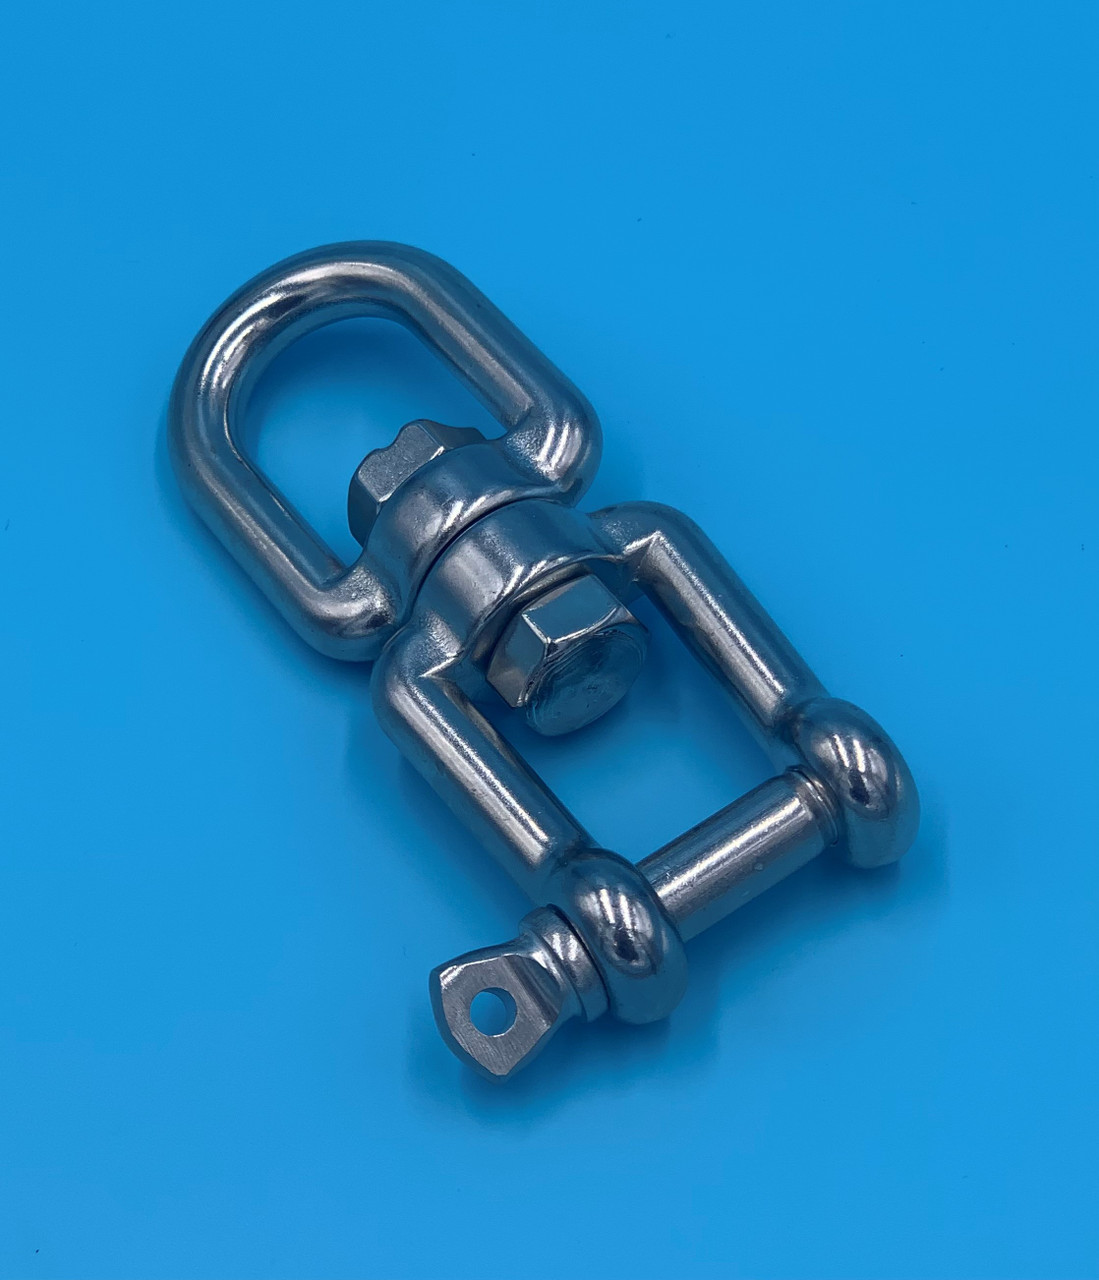 Stainless Steel Swivel with Shackle